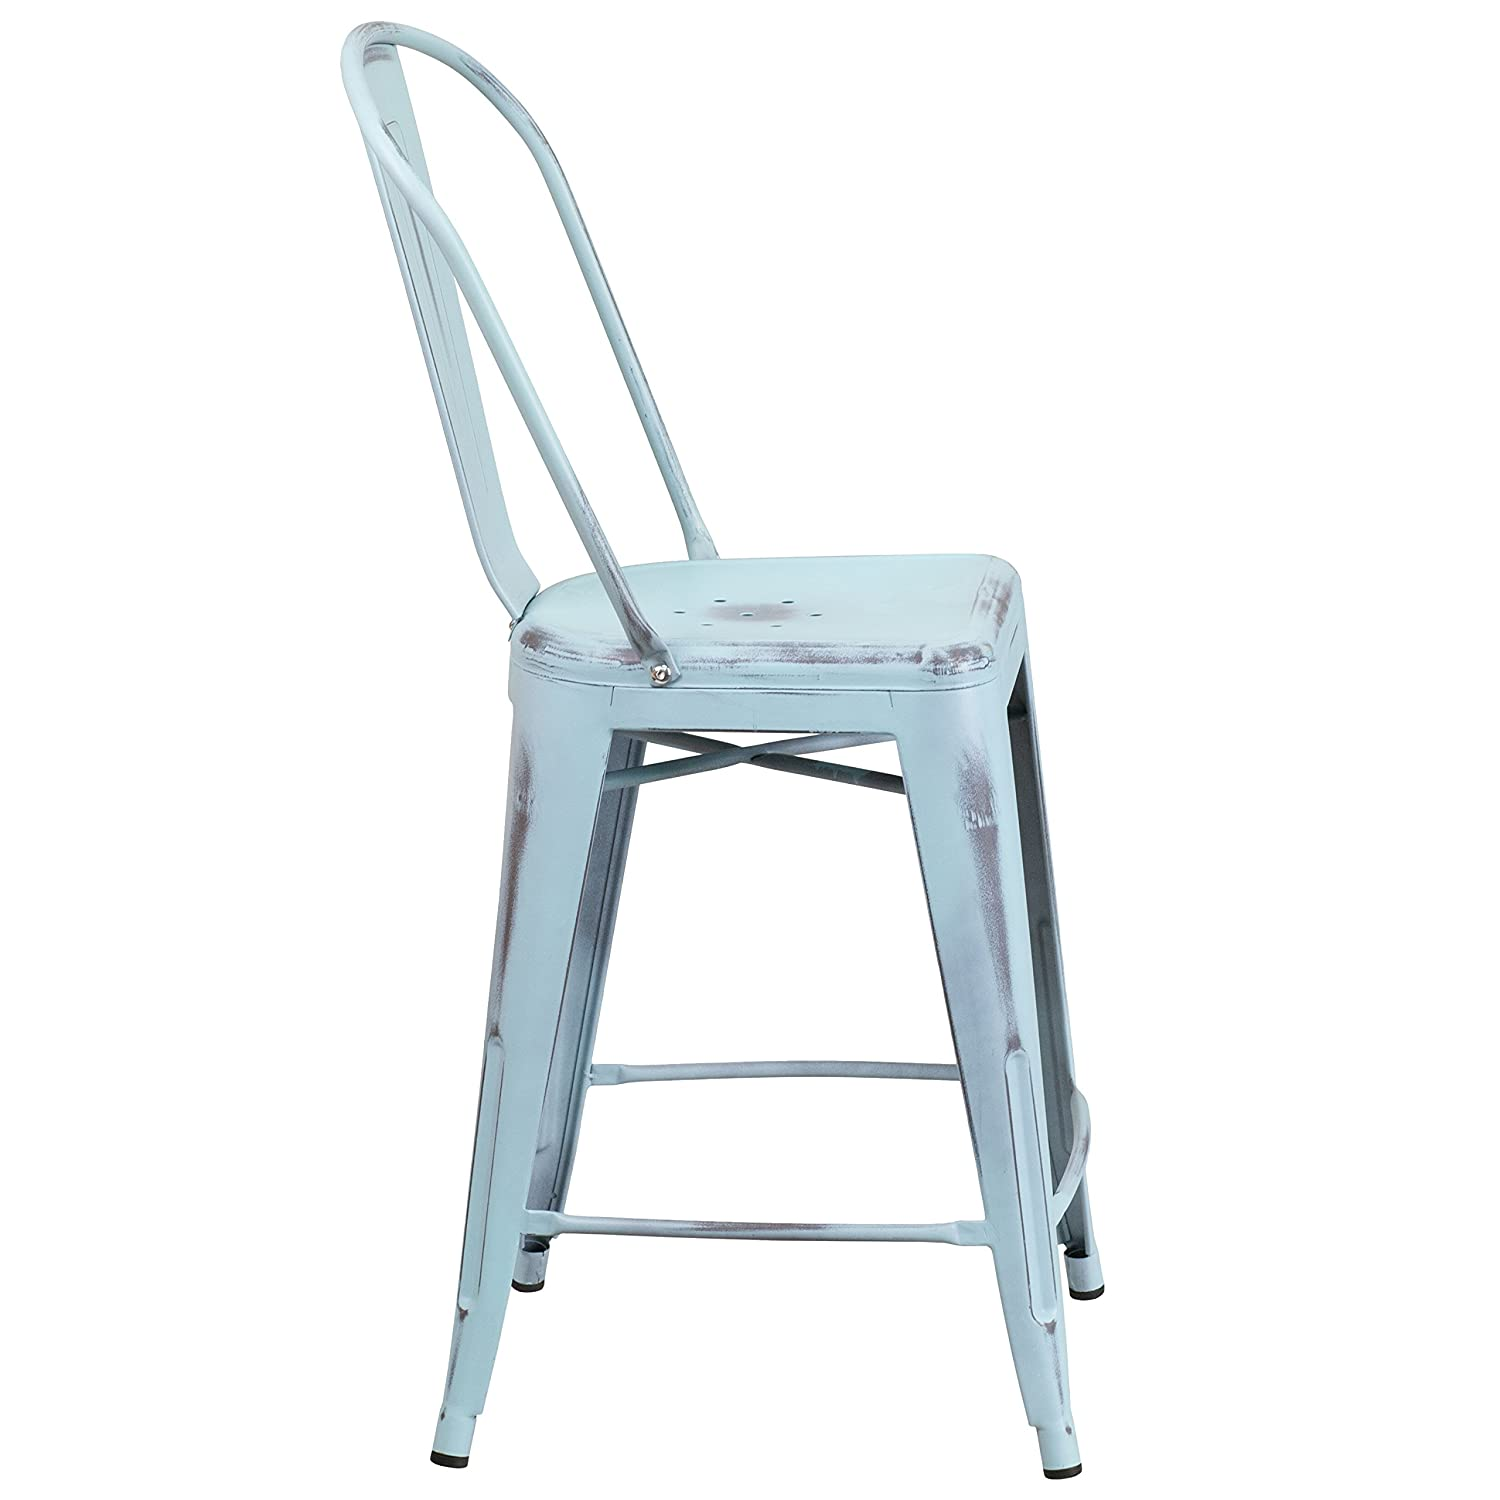 Amazon.com Flash Furniture 24u0027u0027 High Distressed Green-Blue Metal Indoor-Outdoor Counter Height Stool with Back Kitchen u0026 Dining  sc 1 st  Amazon.com & Amazon.com: Flash Furniture 24u0027u0027 High Distressed Green-Blue Metal ... islam-shia.org